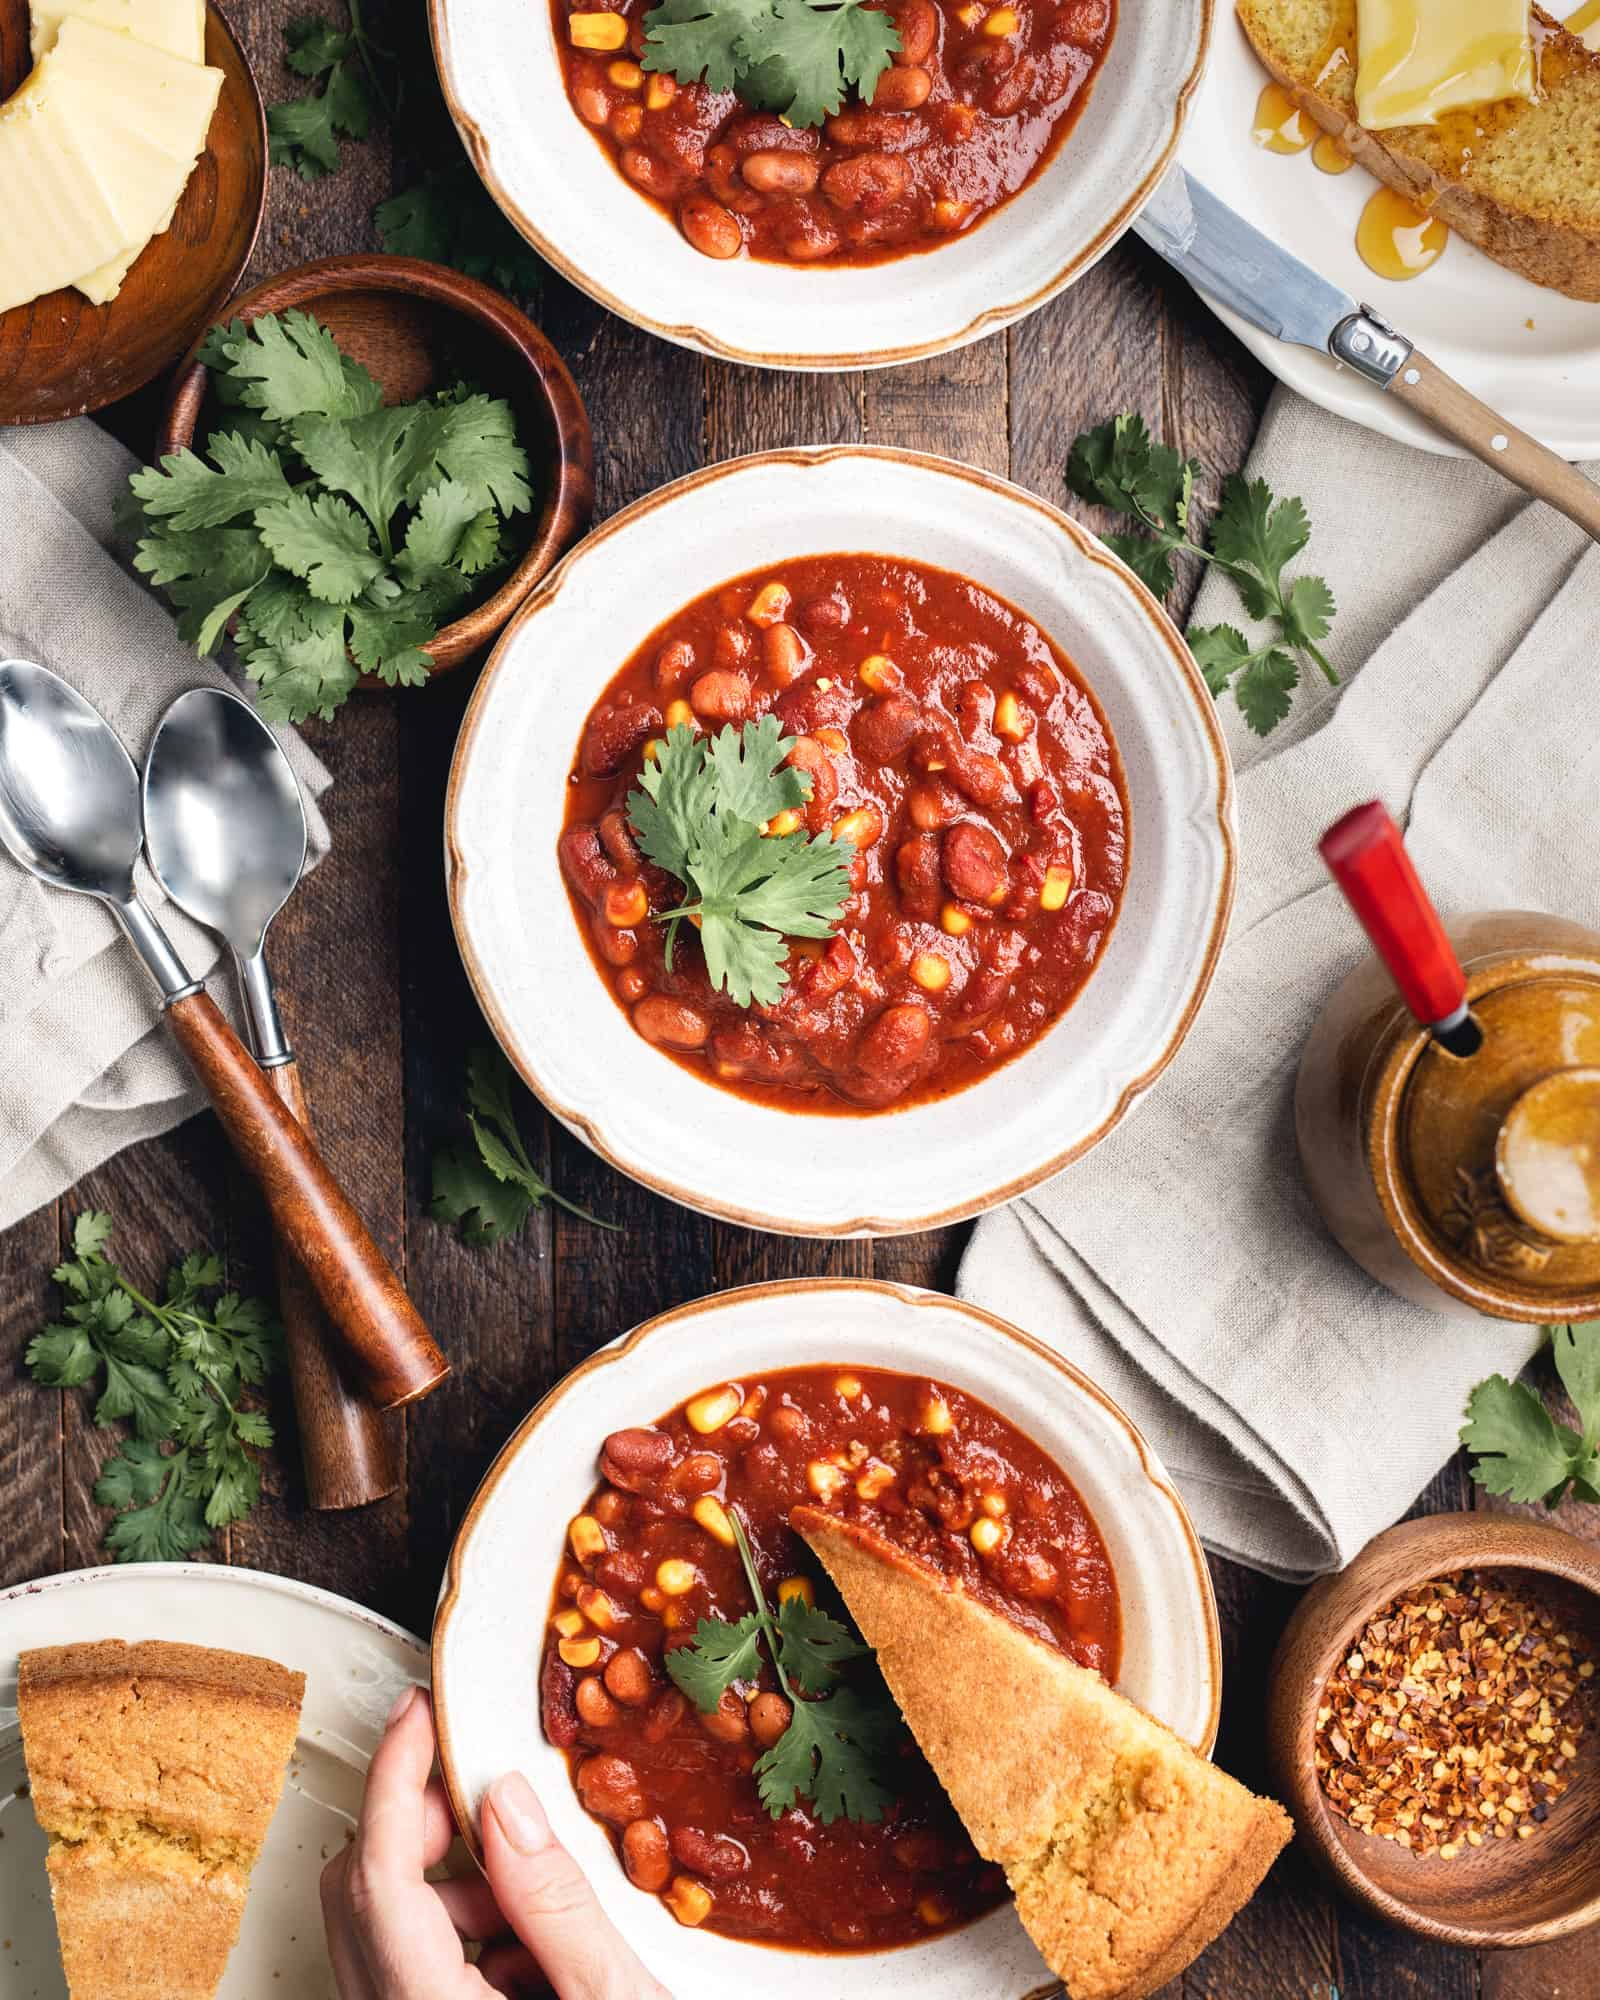 Vegan Chili in three bowls with cornbread and honey